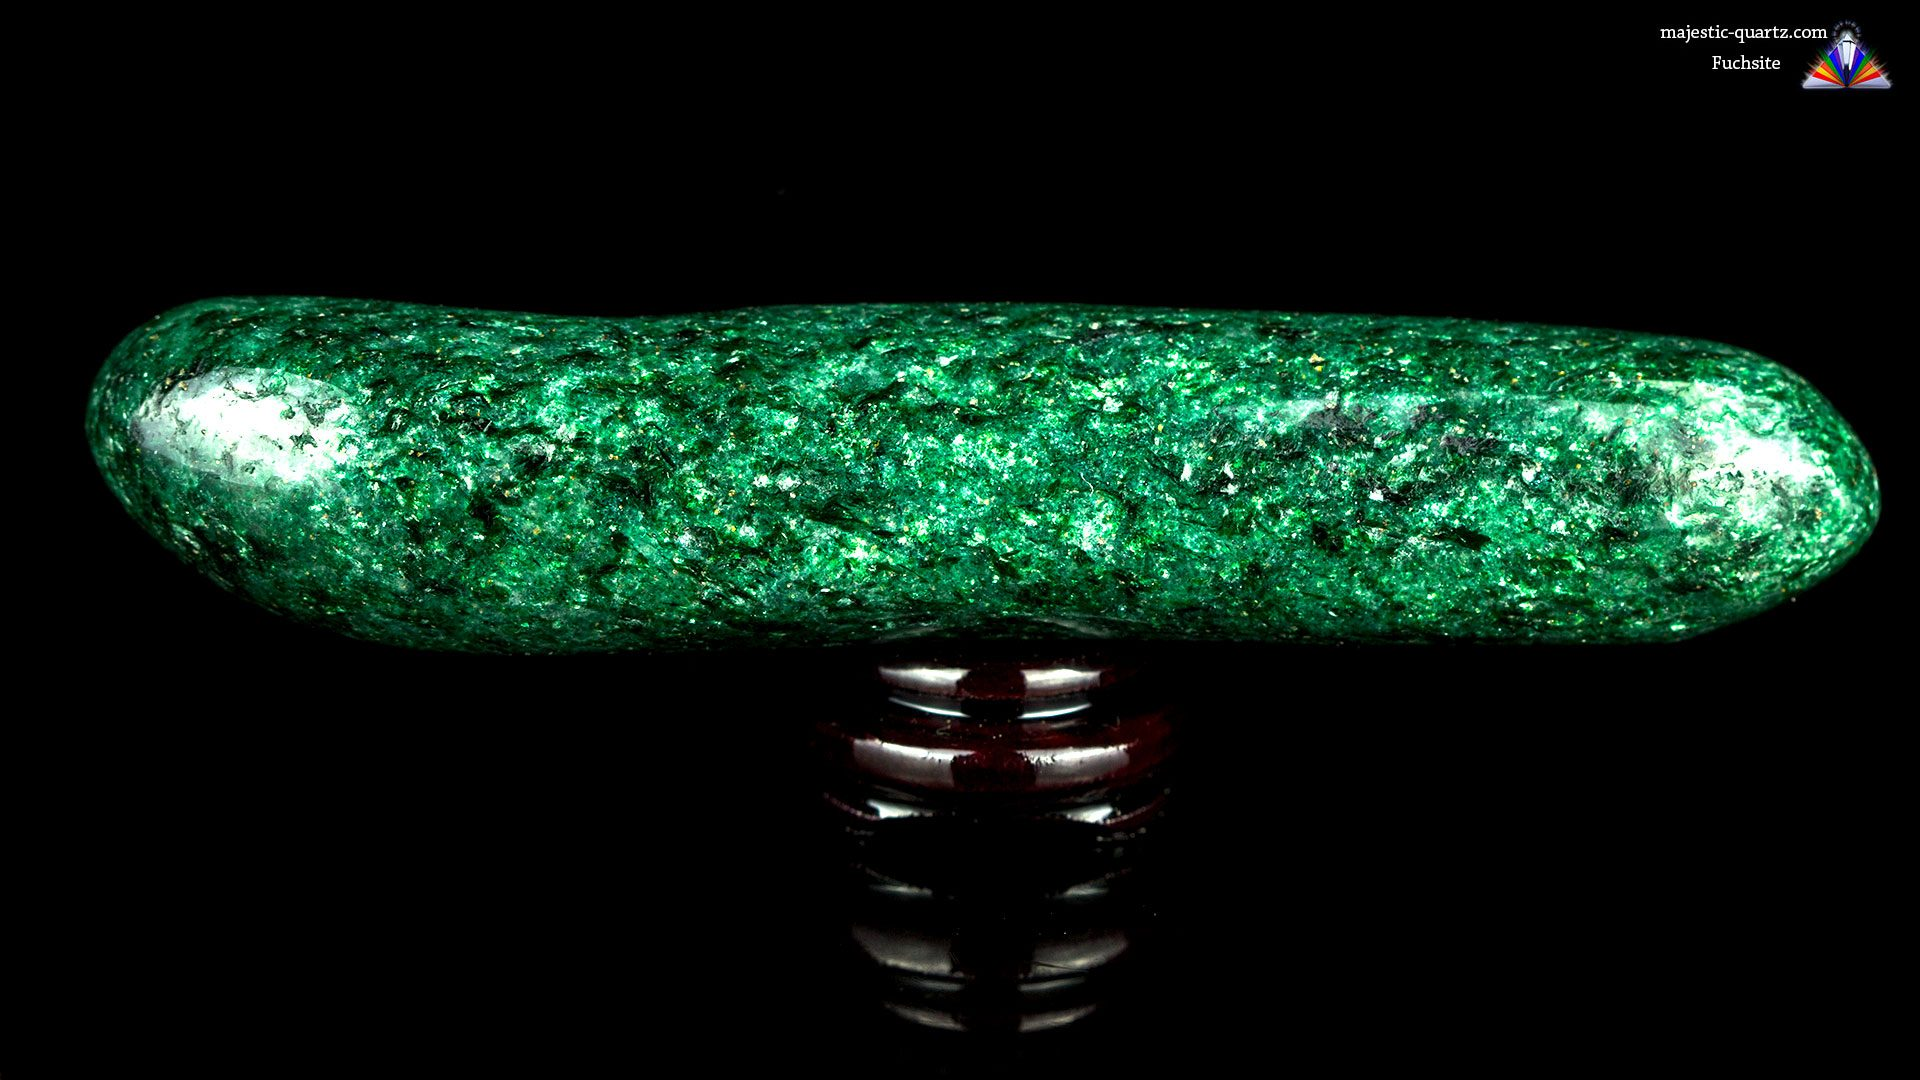 Fuchsite Wand - Photograph by Anthony Bradford